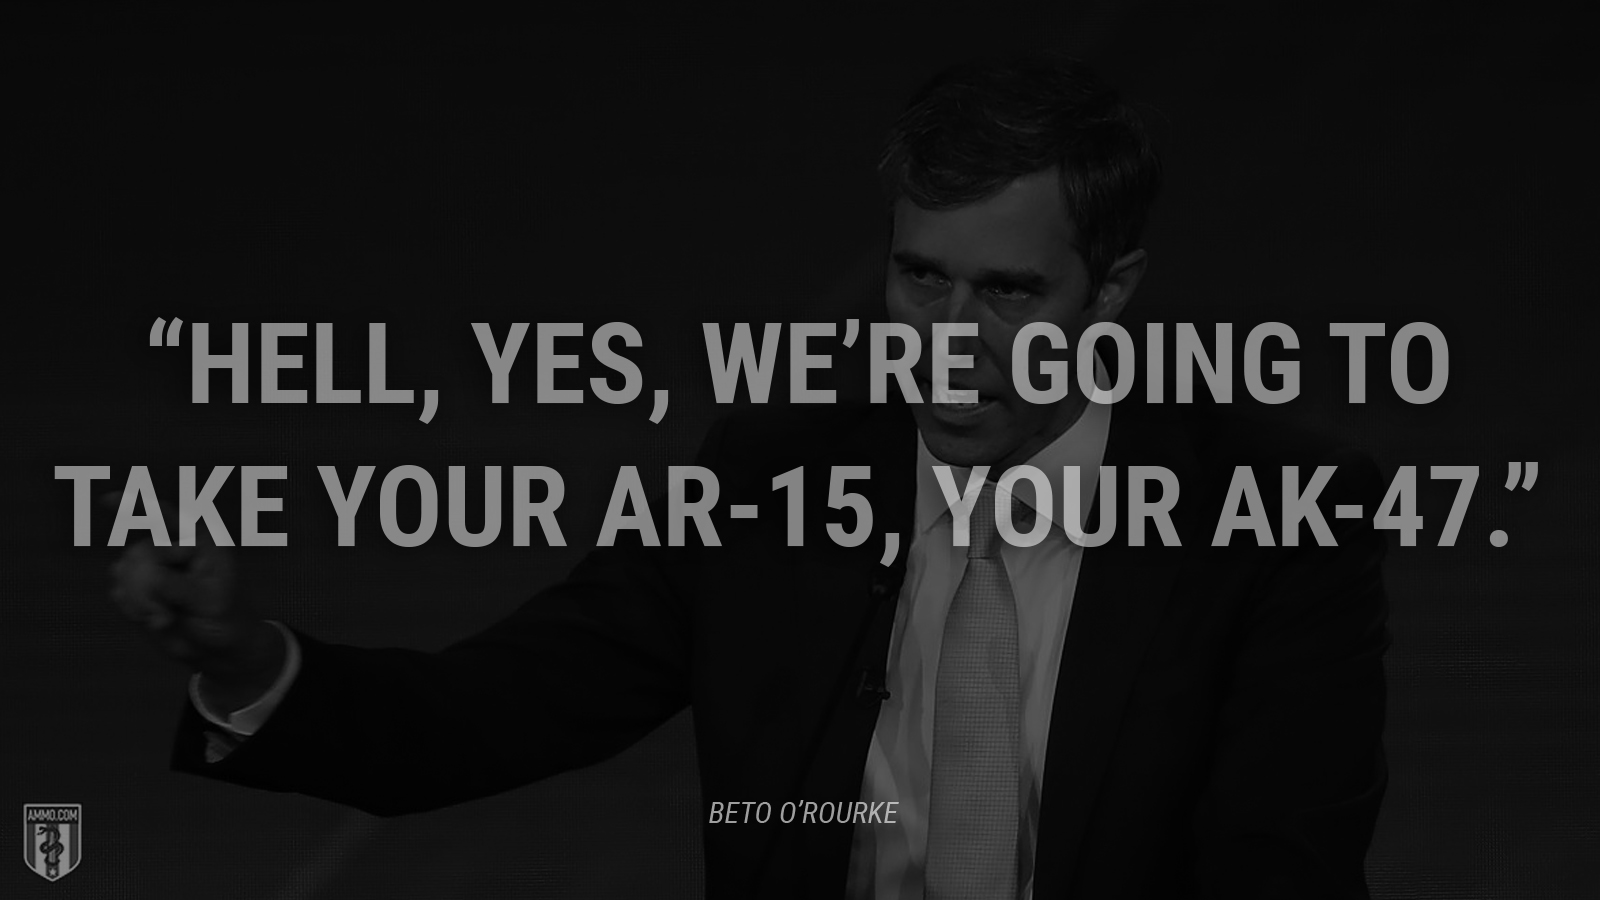 """Hell, yes, we're going to take your AR-15, your AK-47."" - Beto O'Rourke"